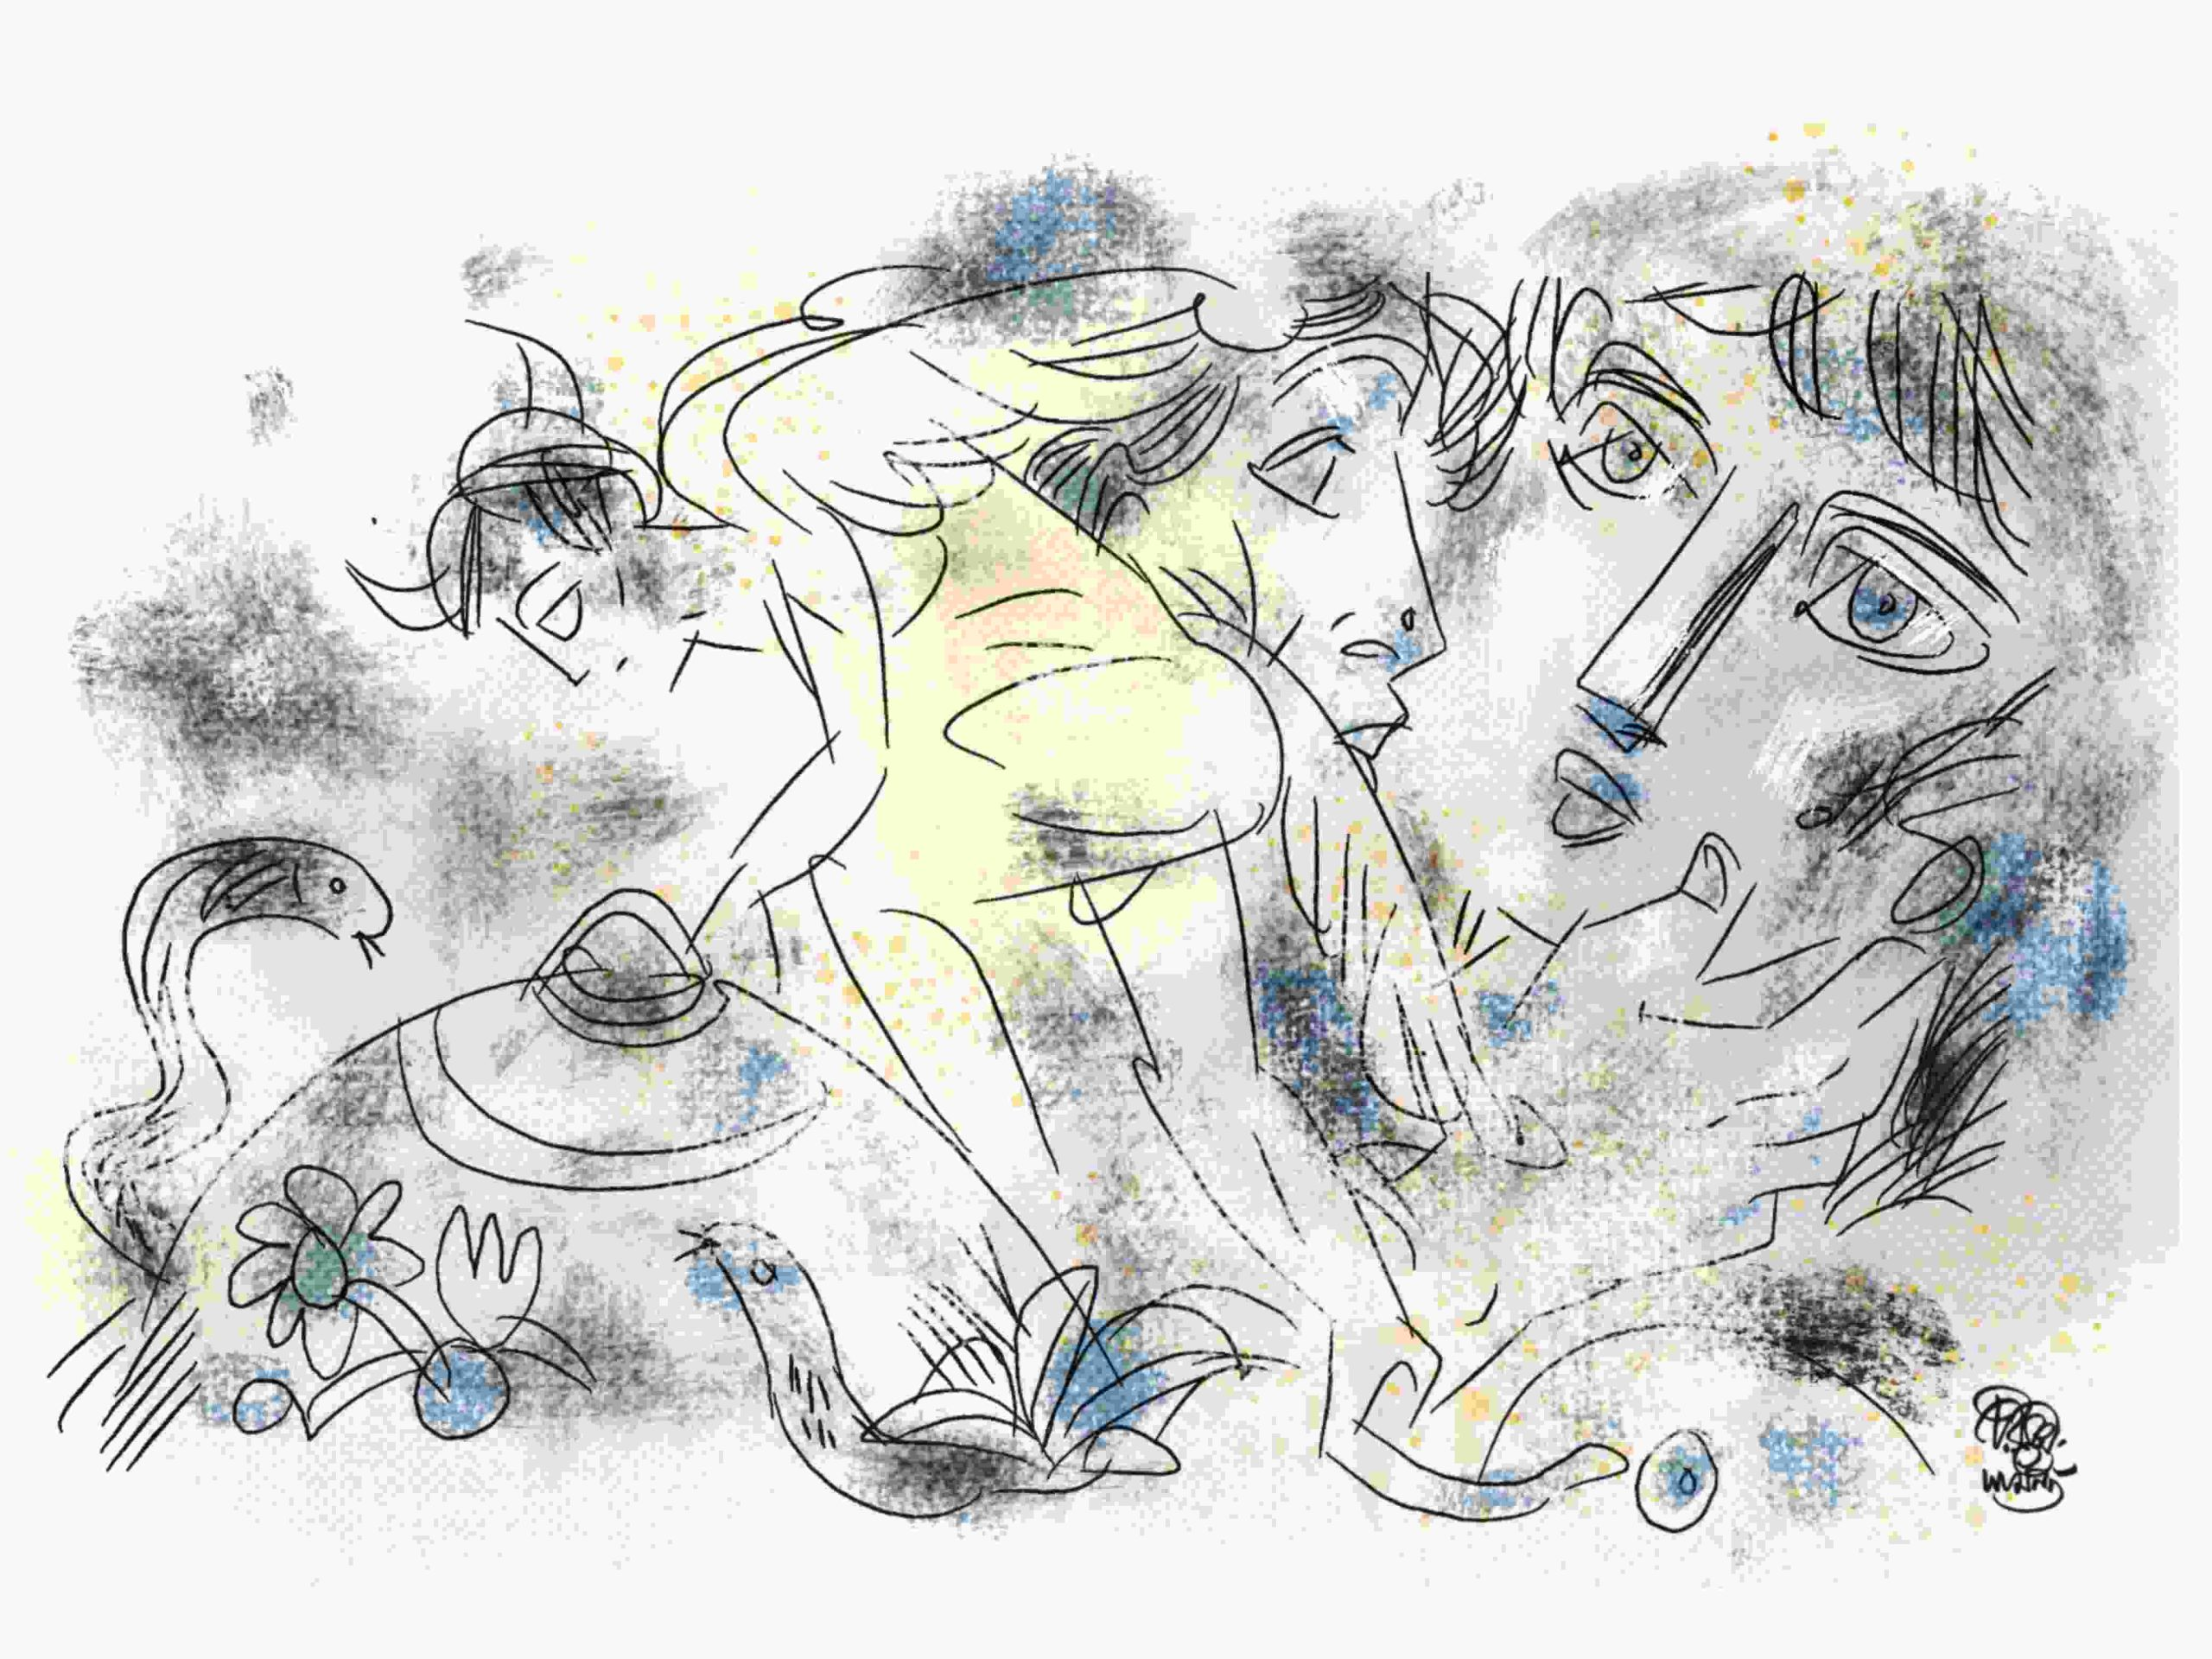 illustration by chiranjit samanta for subodh sarkar long poem